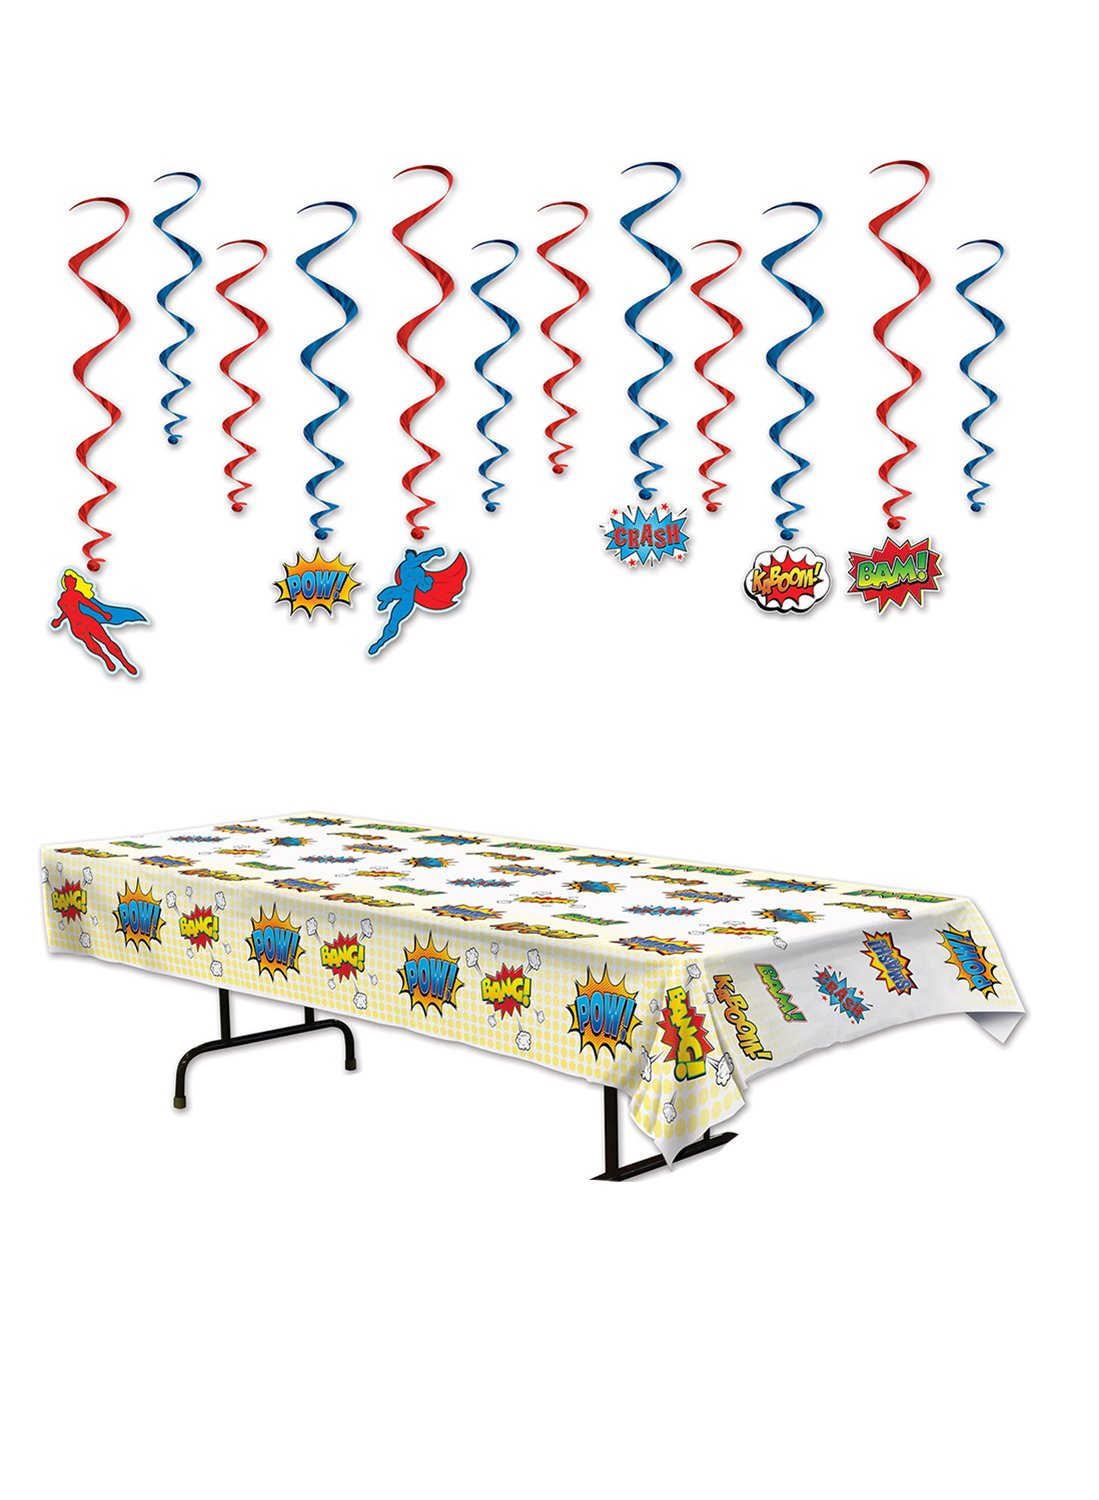 TwiceBooked Superhero Party Decoration Kit - Table Cover and Hanging Whirls